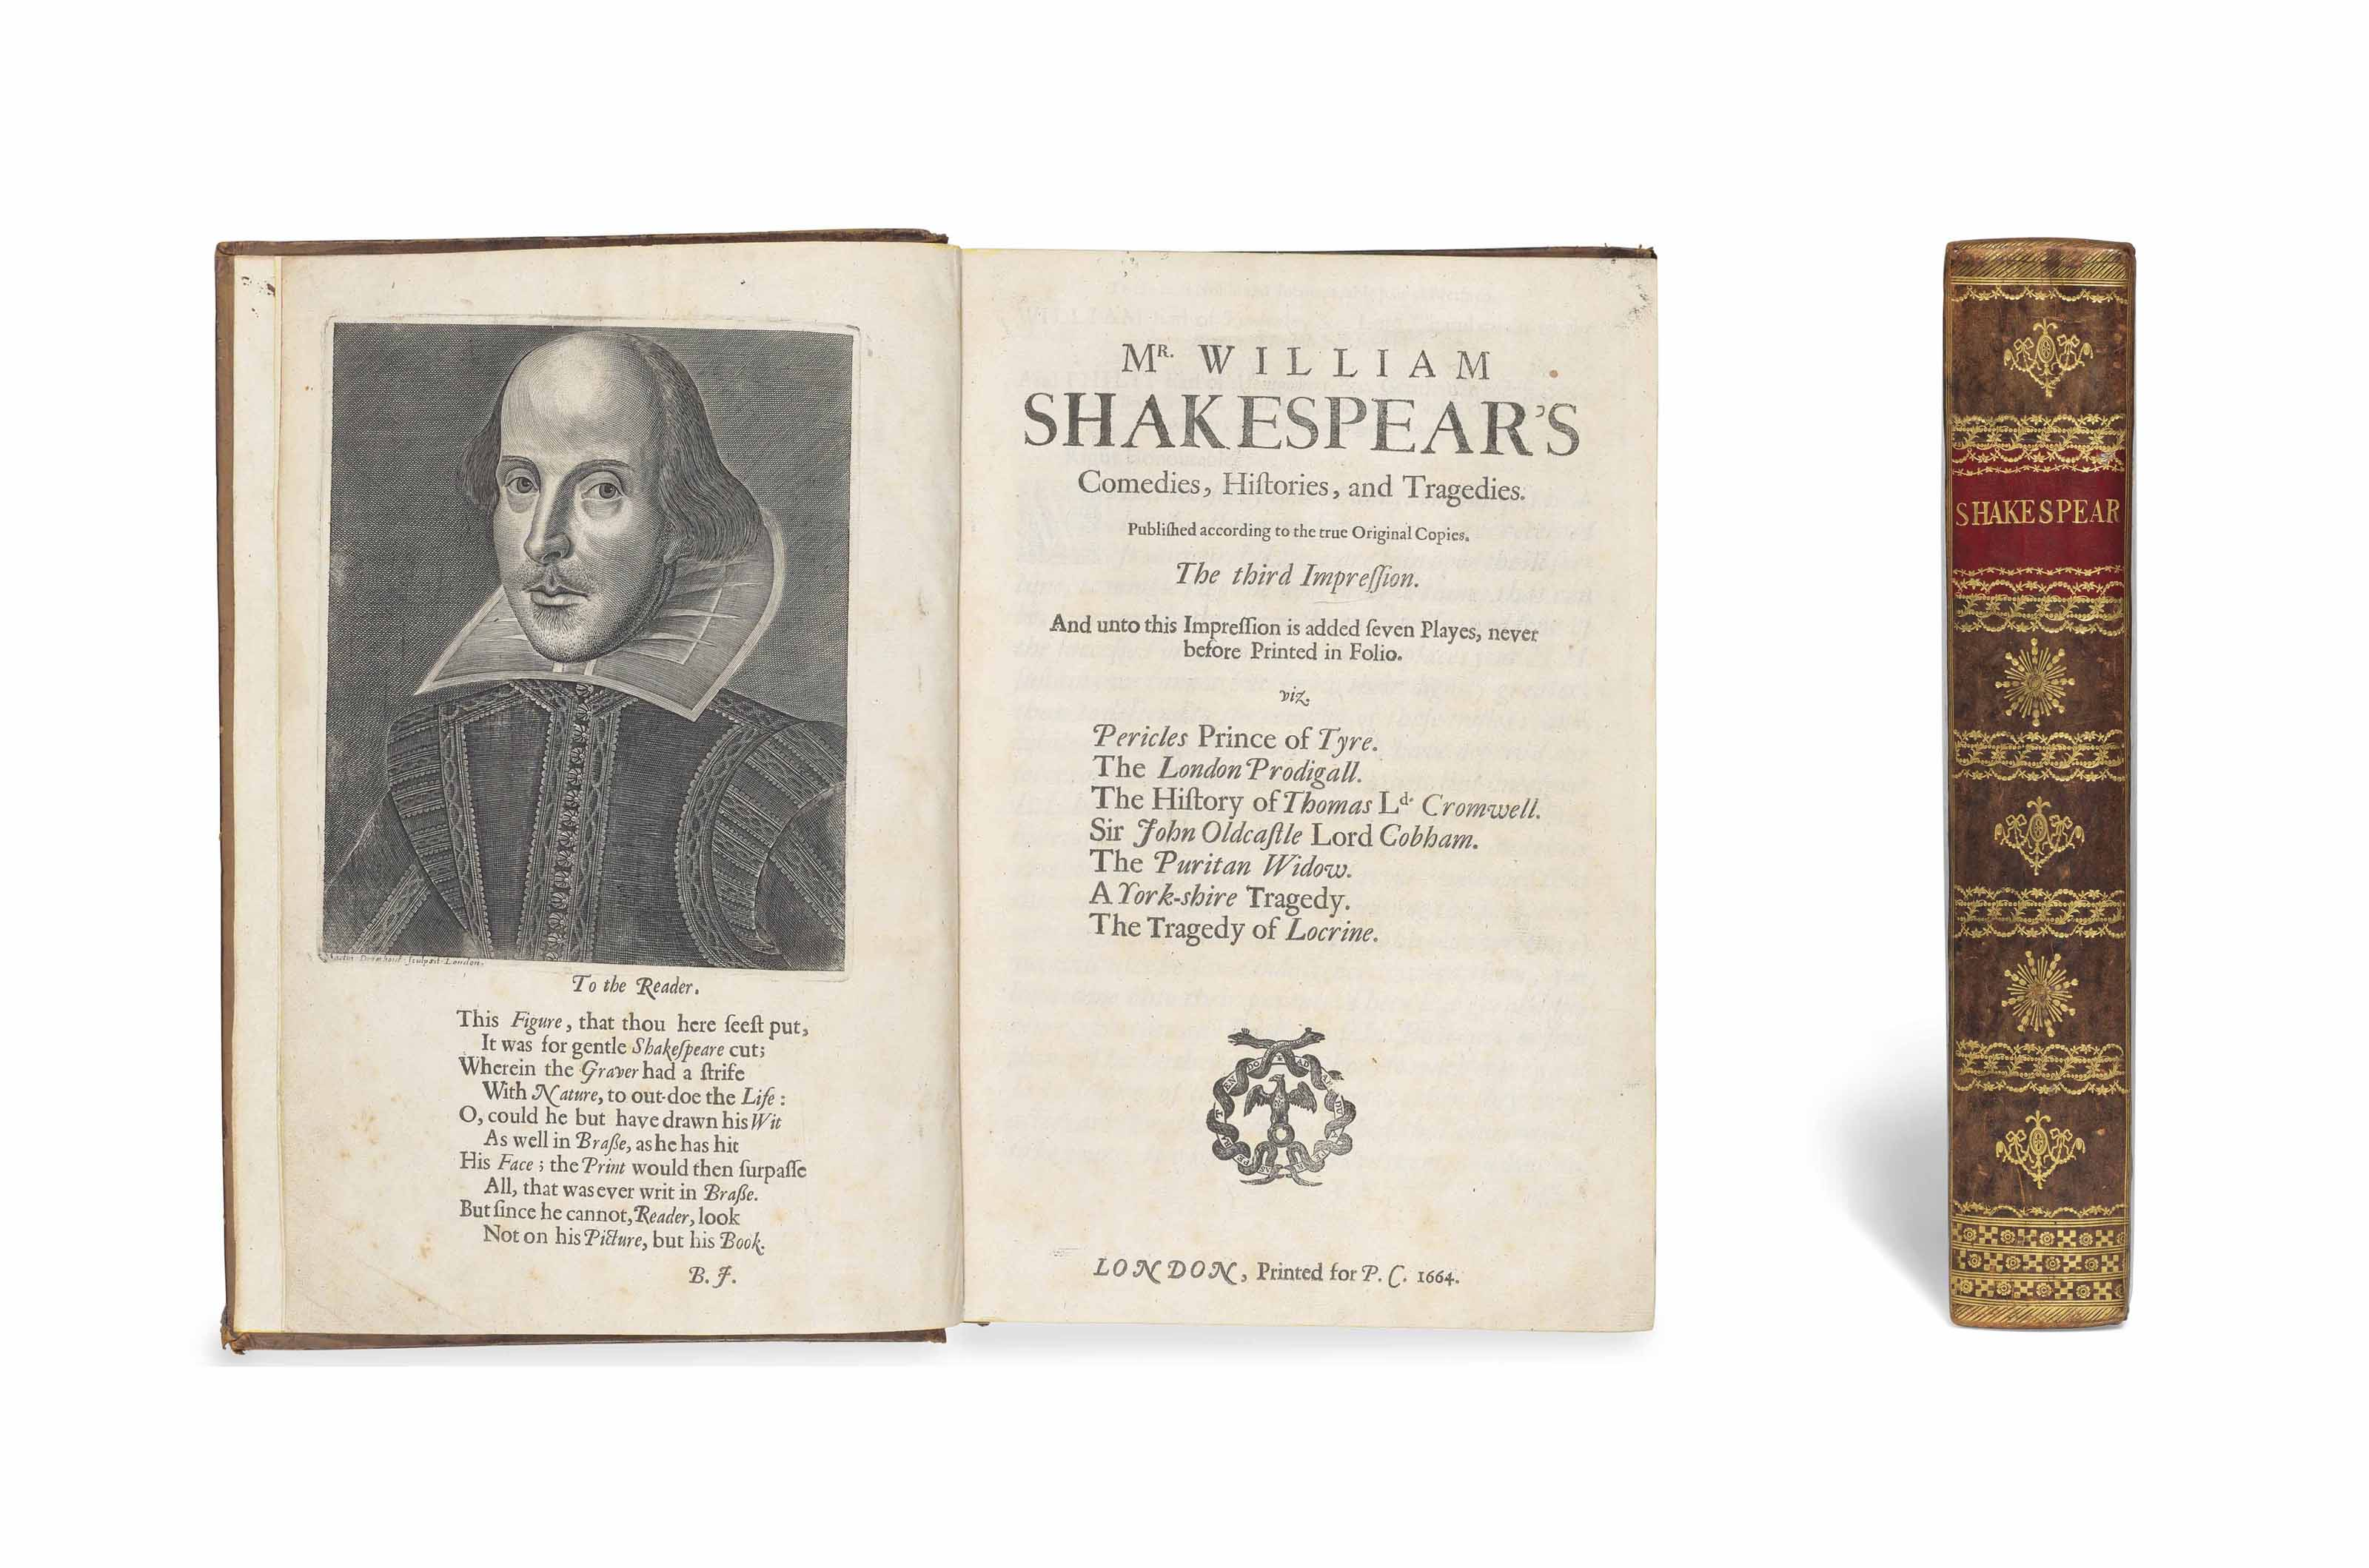 SHAKESPEARE, William (1564-1616). Comedies, Histories and Tragedies. Published according to the true original copies. The third impression. And unto this Impression is added seven Playes, never before Printed in Folio. Edited by John Heminge (d. 1630) and Henry Condell (d. 1627), except for the 7 additional plays. London: Printed [by Roger Daniel, John Hayes or Thomas Ratcliffe, and Alice Warren] for P[hilip]. C[hetwind], 1664.